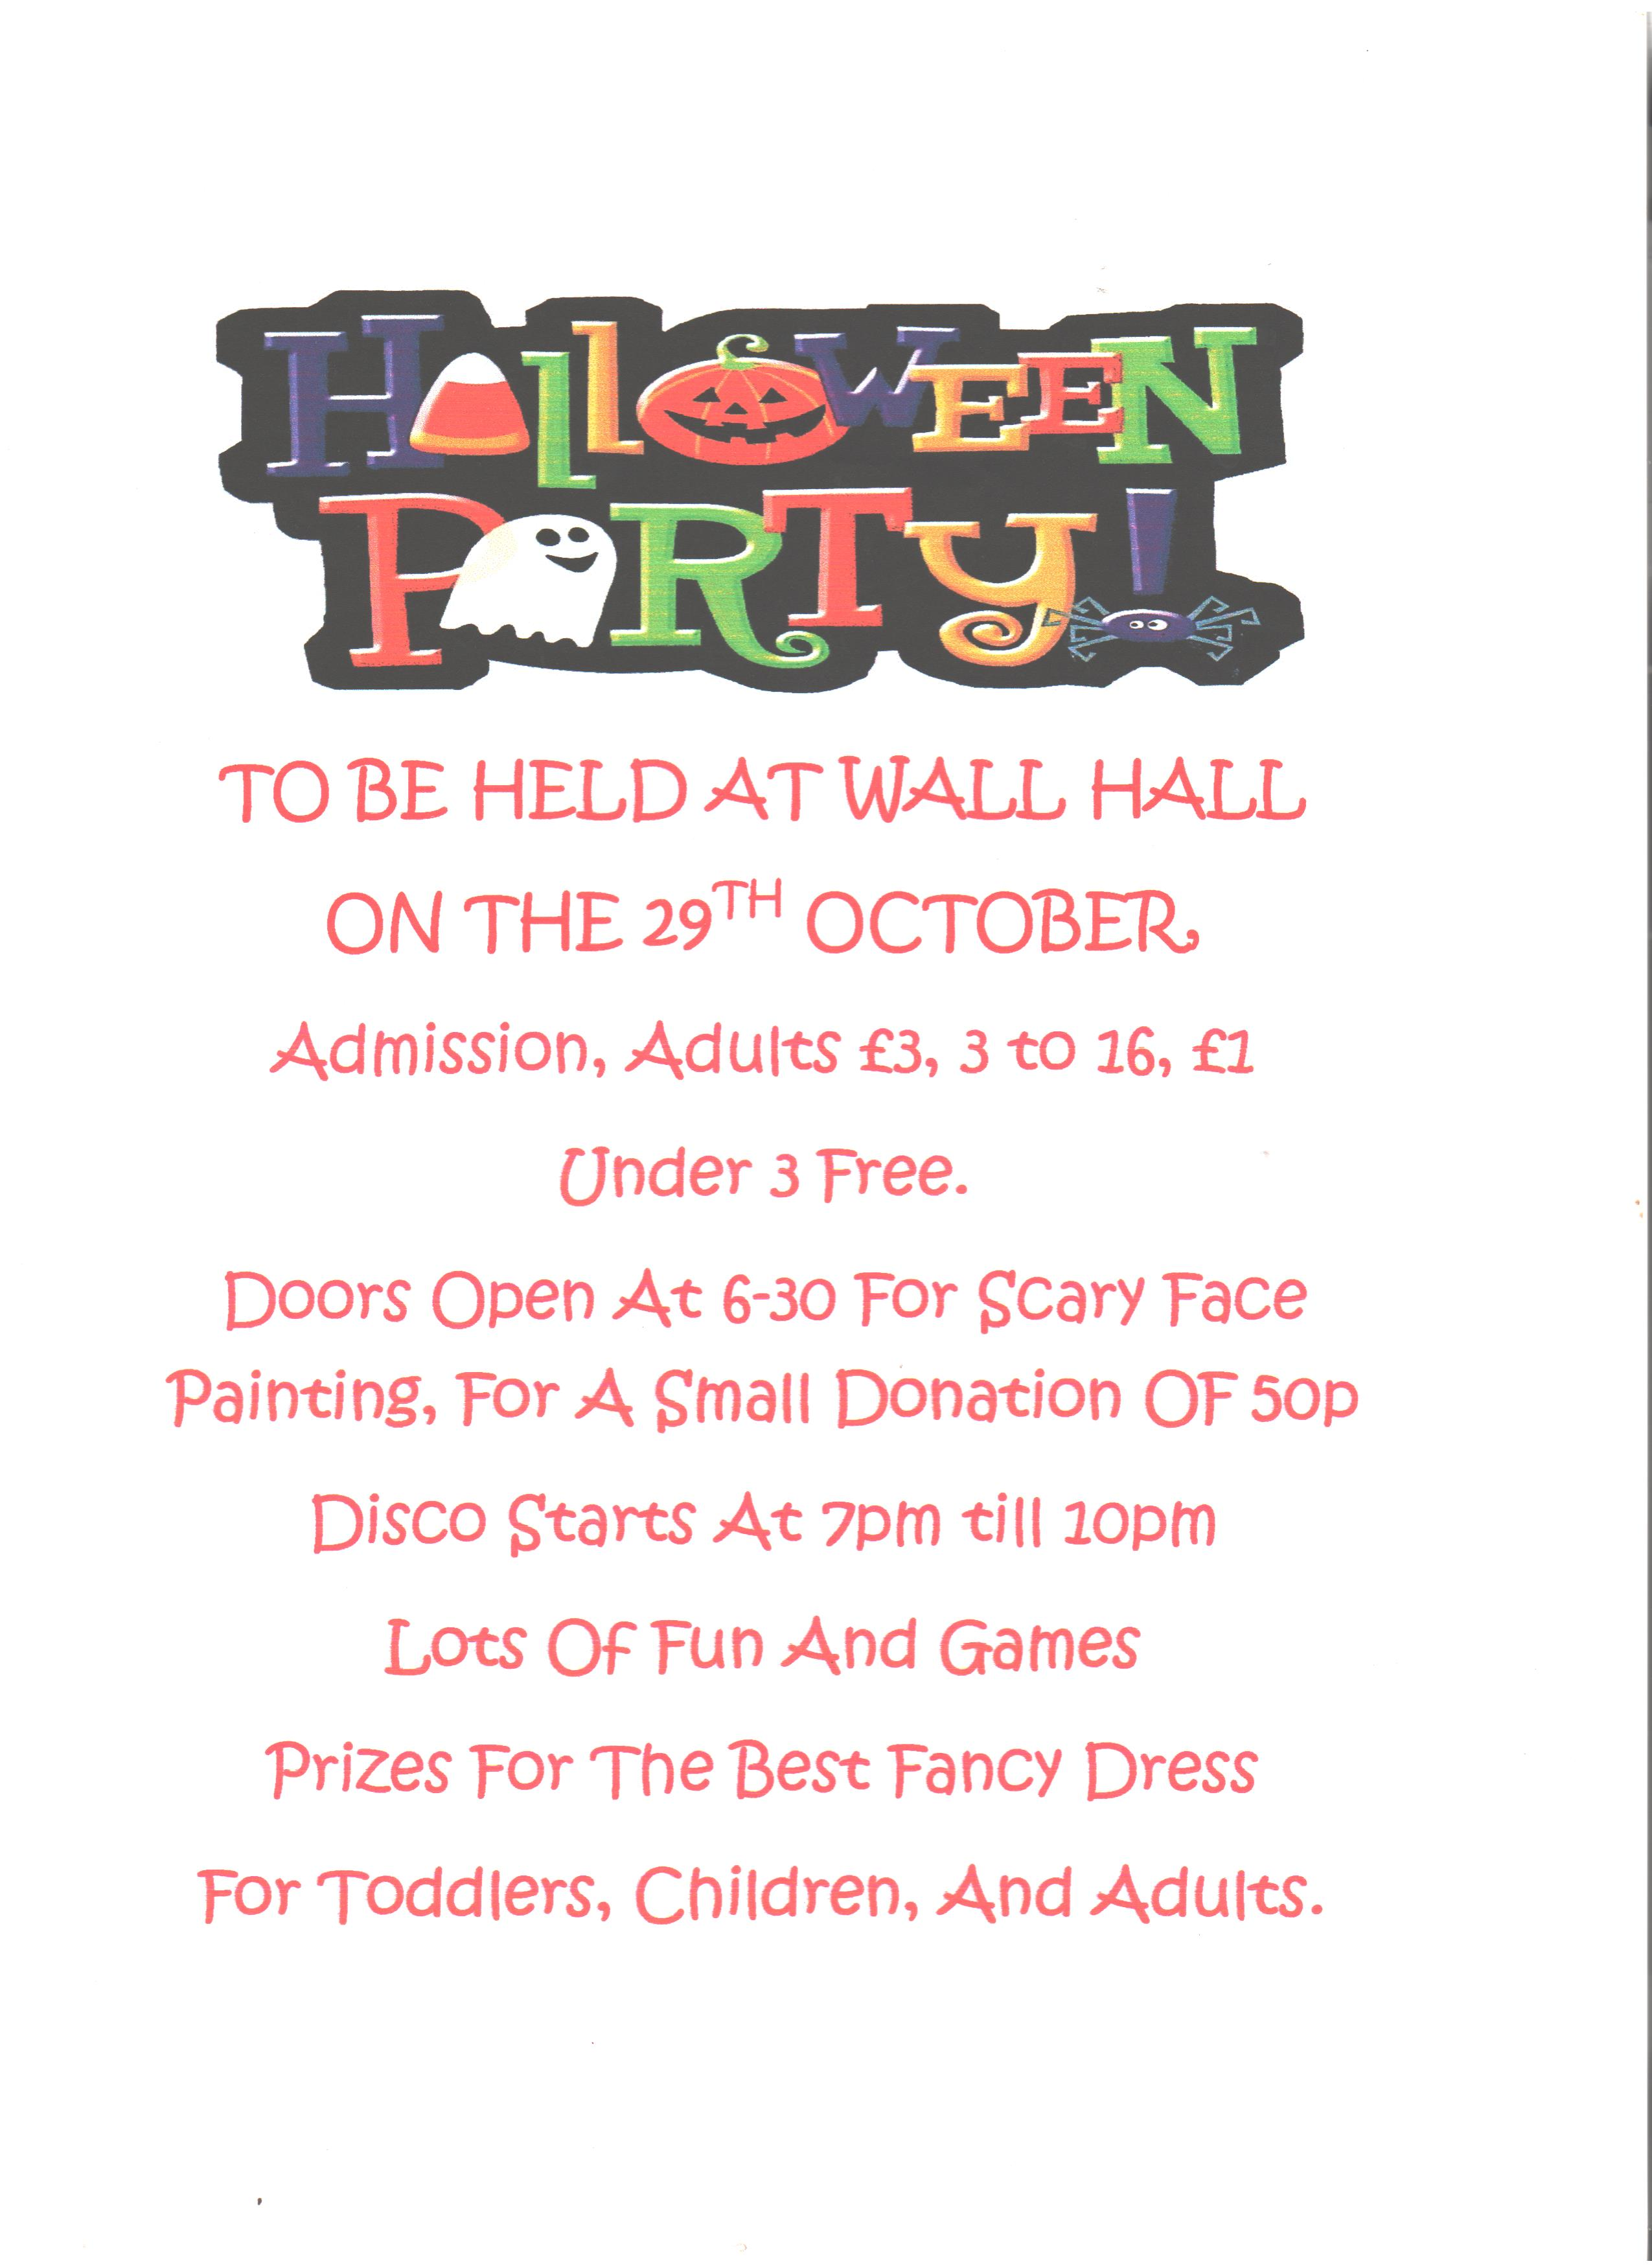 PTRA – Halloween Party – 29th October